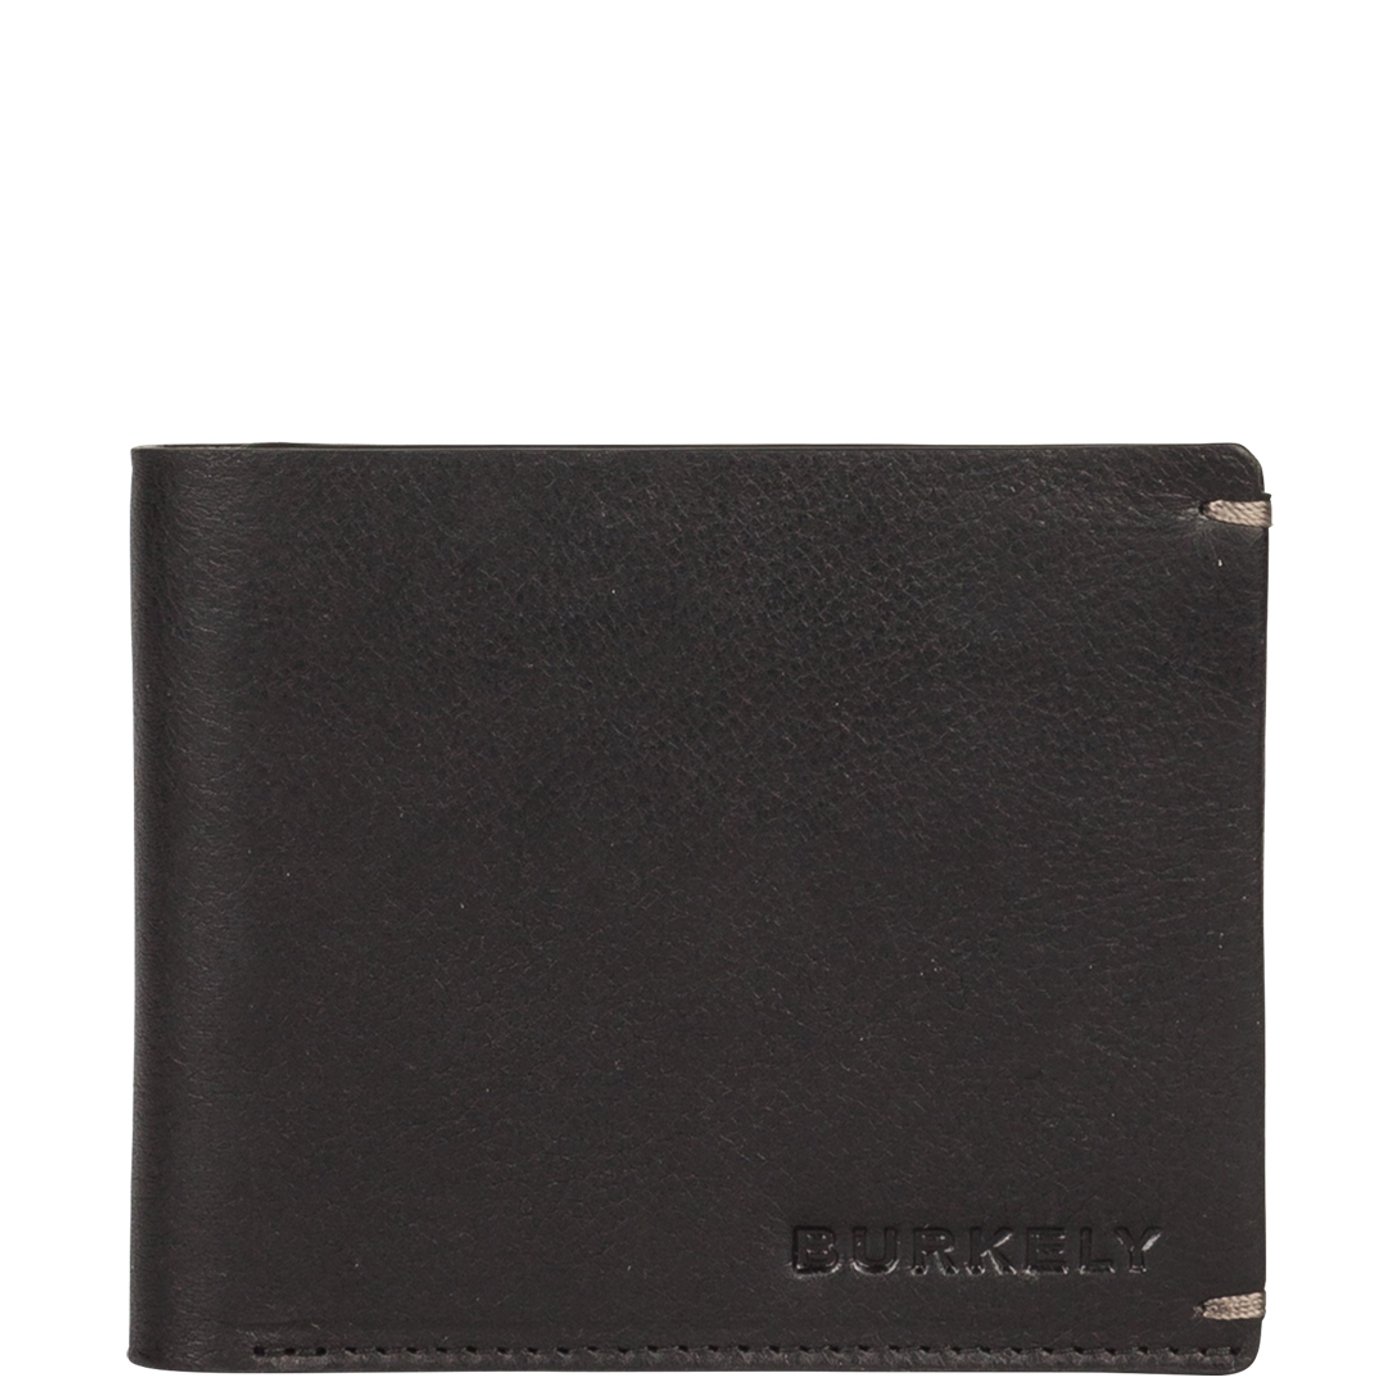 Bilde av Burkely Antique Avery Black Wallet 133256.10